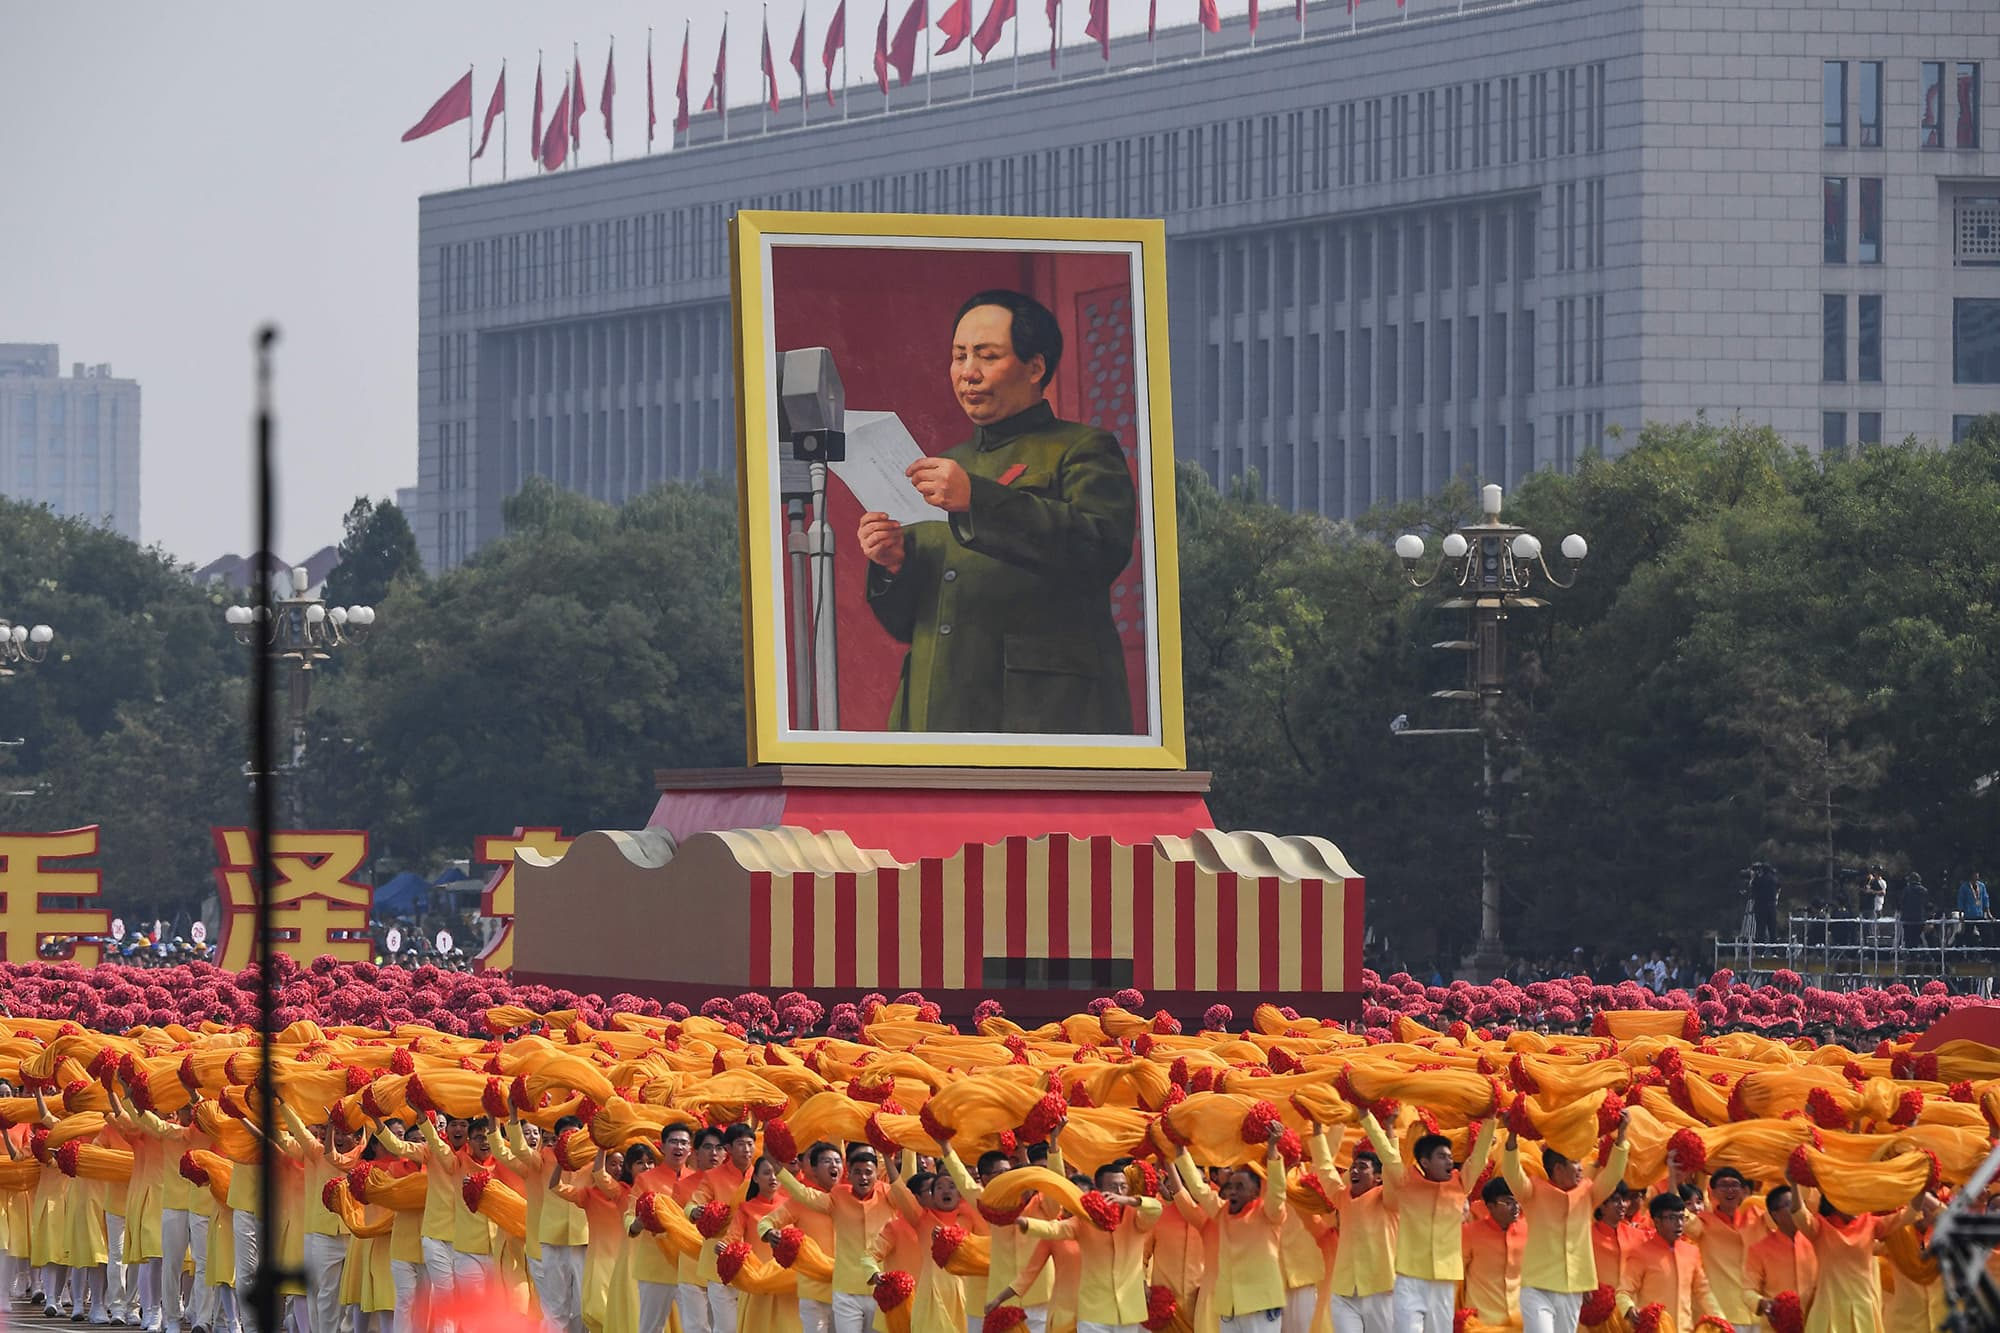 A giant portrait of former Chinese Communist Party leader Mao Zedong passes by Tiananmen Square during the National Day parade in Beijing on October 1, 2019, to mark the 70th anniversary of the founding of the People's Republic of China. (Photo by Greg BAKER / AFP) — AFP or licensors